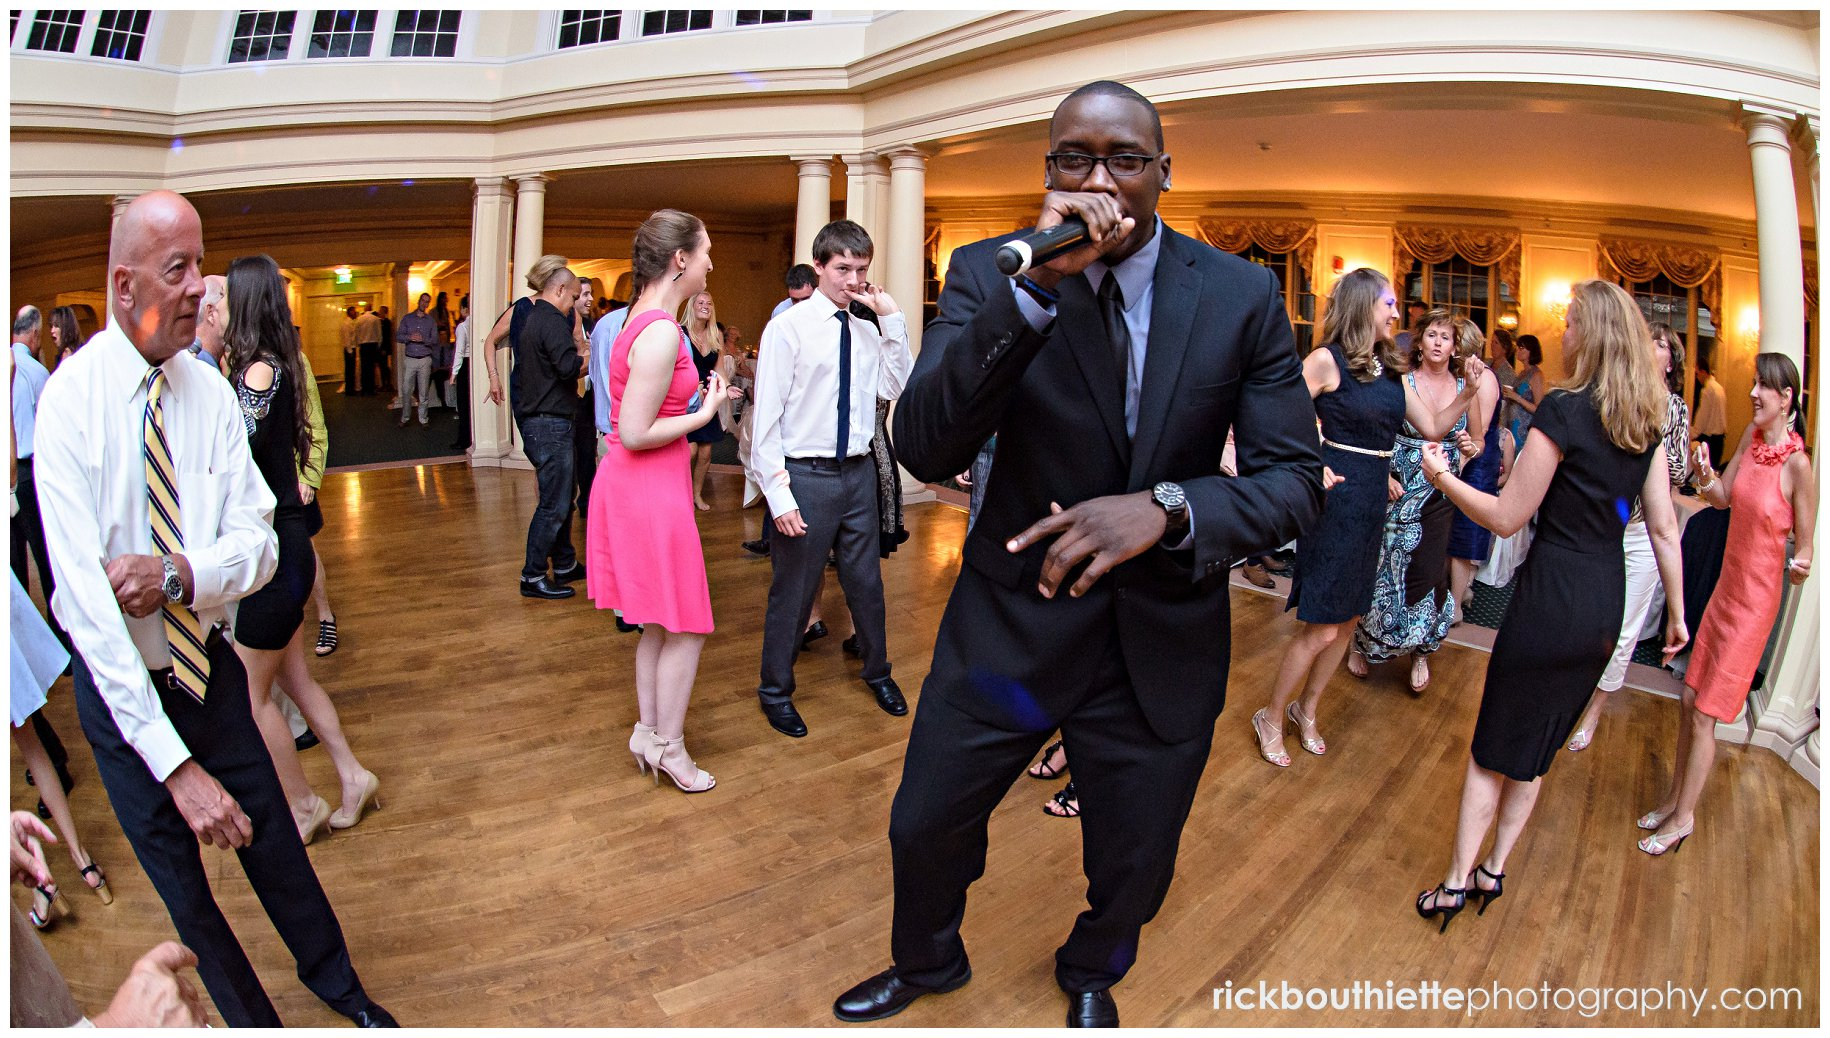 Sunny Mountain View Grand Resort Wedding Featuring The Hub 8/9/14 - Rick Bouthiette Photography